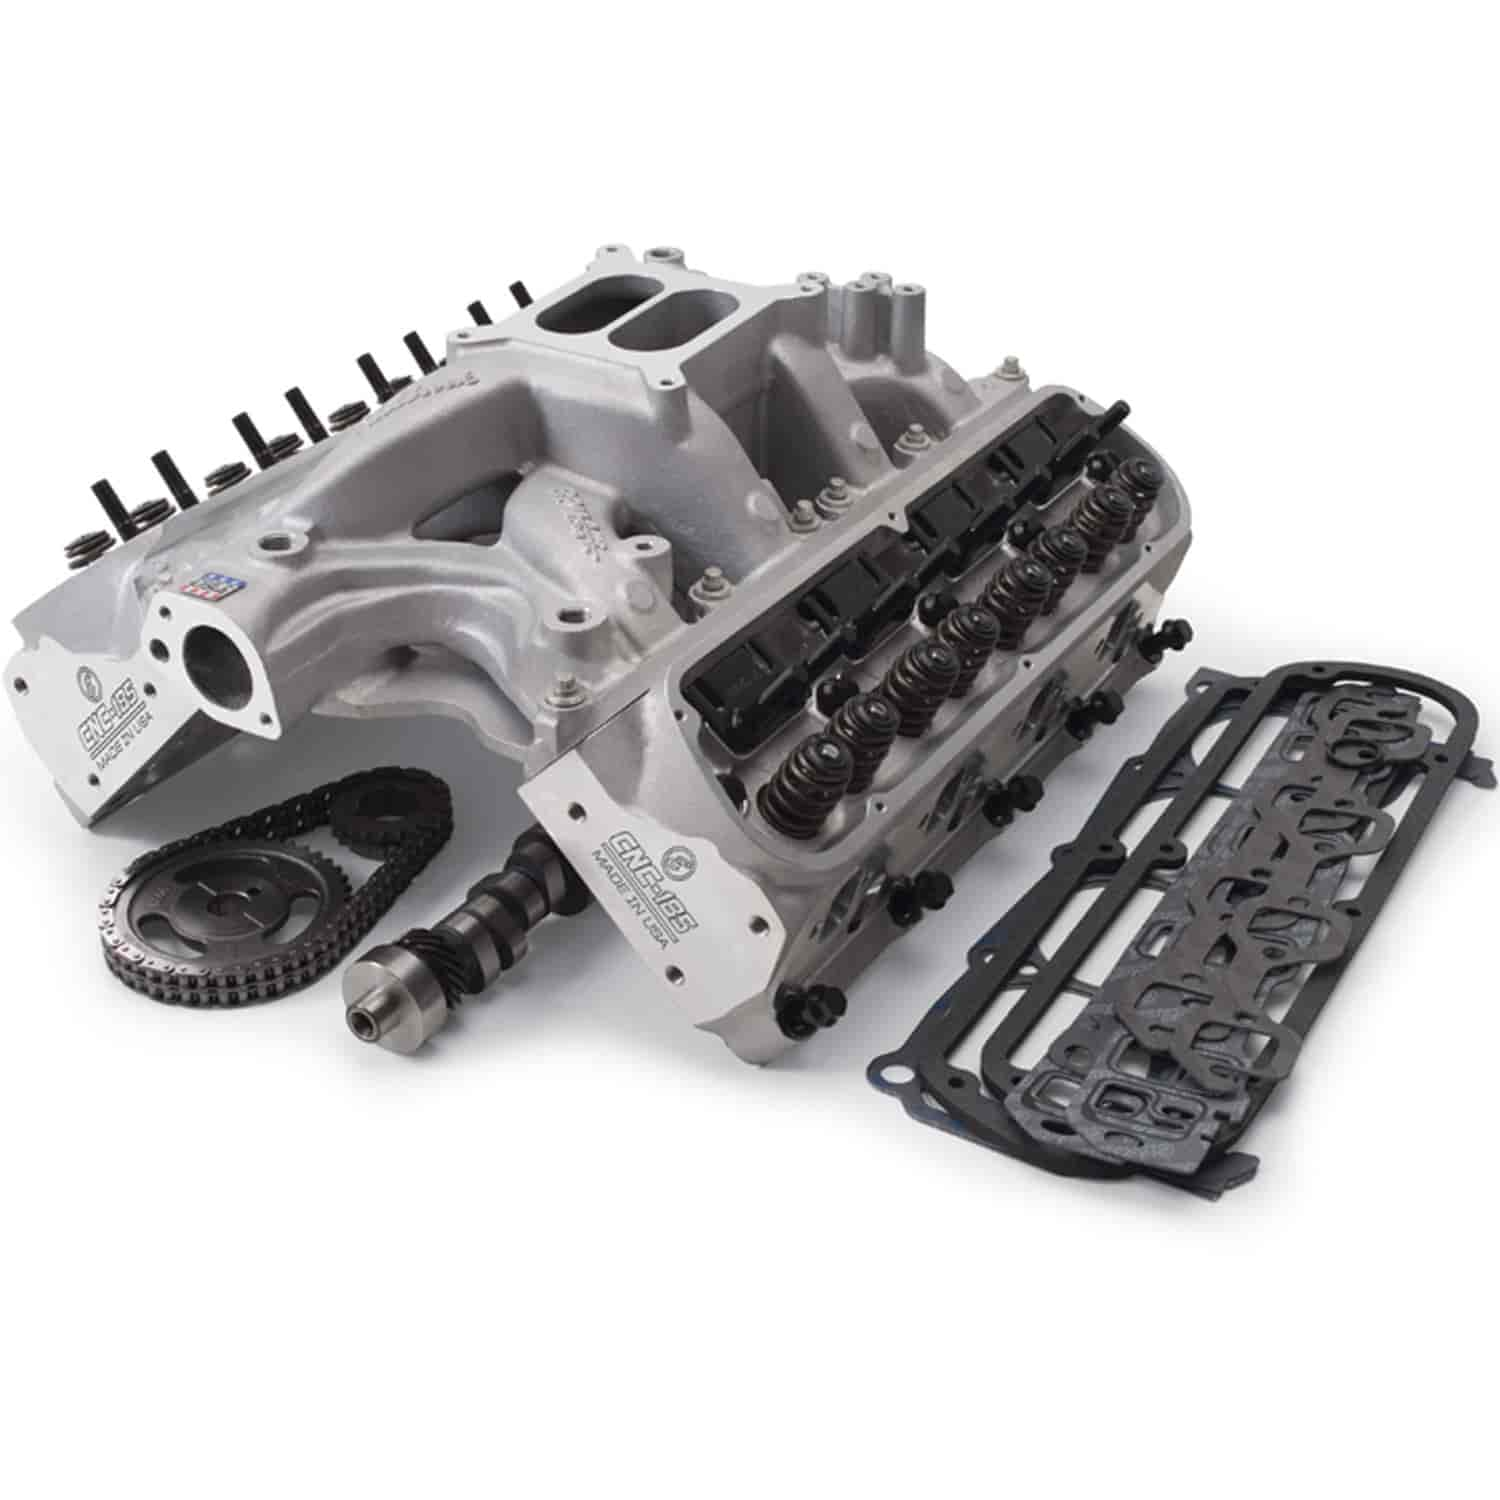 Edelbrock 2019 Rpm Power Package Top End Kit Small Block: Edelbrock 2090 RPM Power Package Top End Kit 1969-95 Small